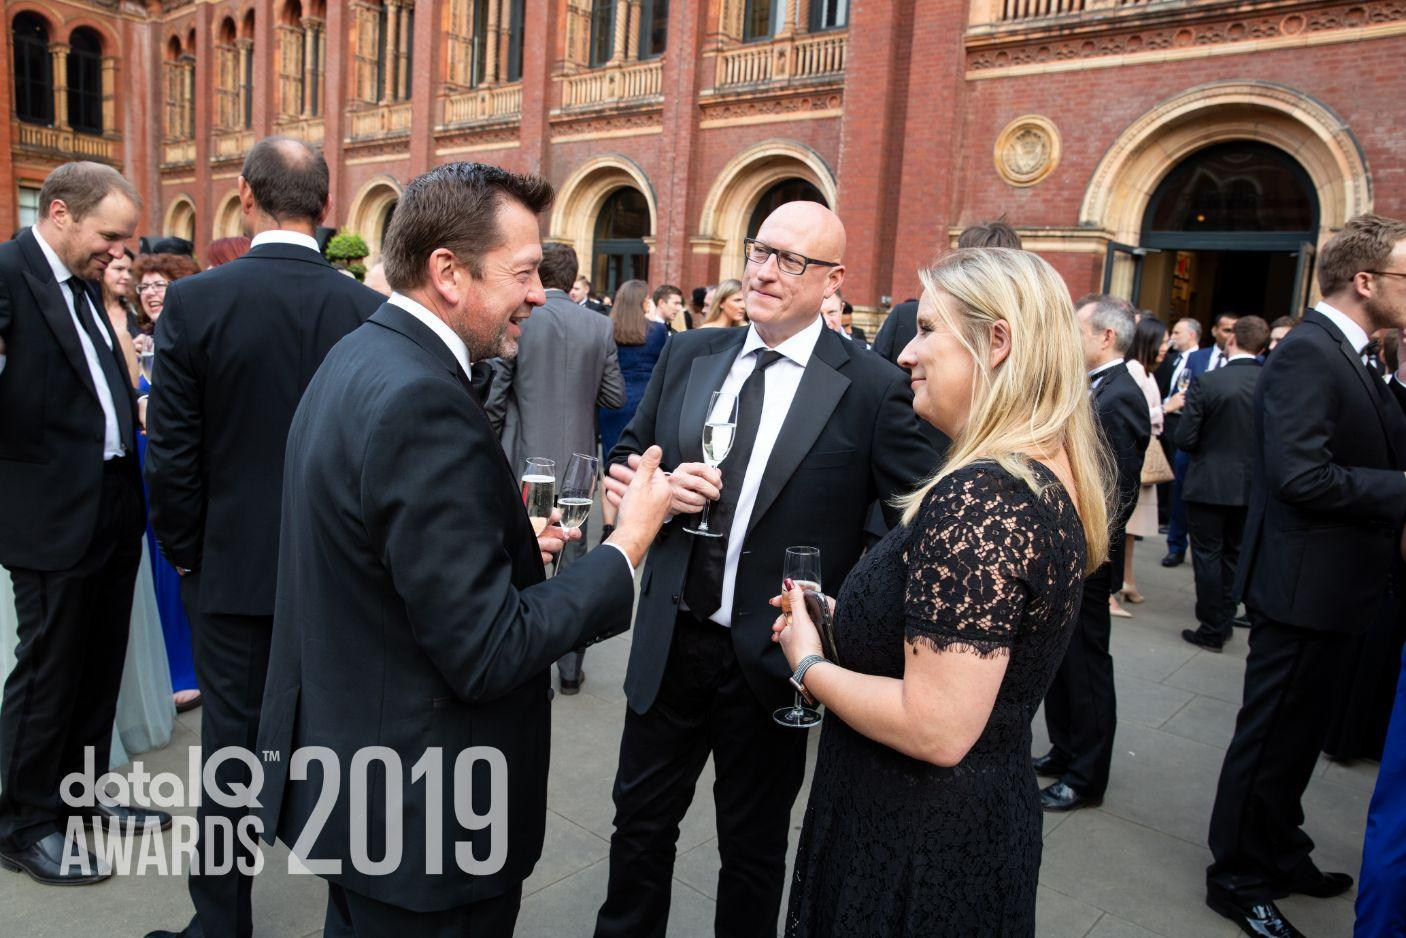 Awards 2019 Image 94